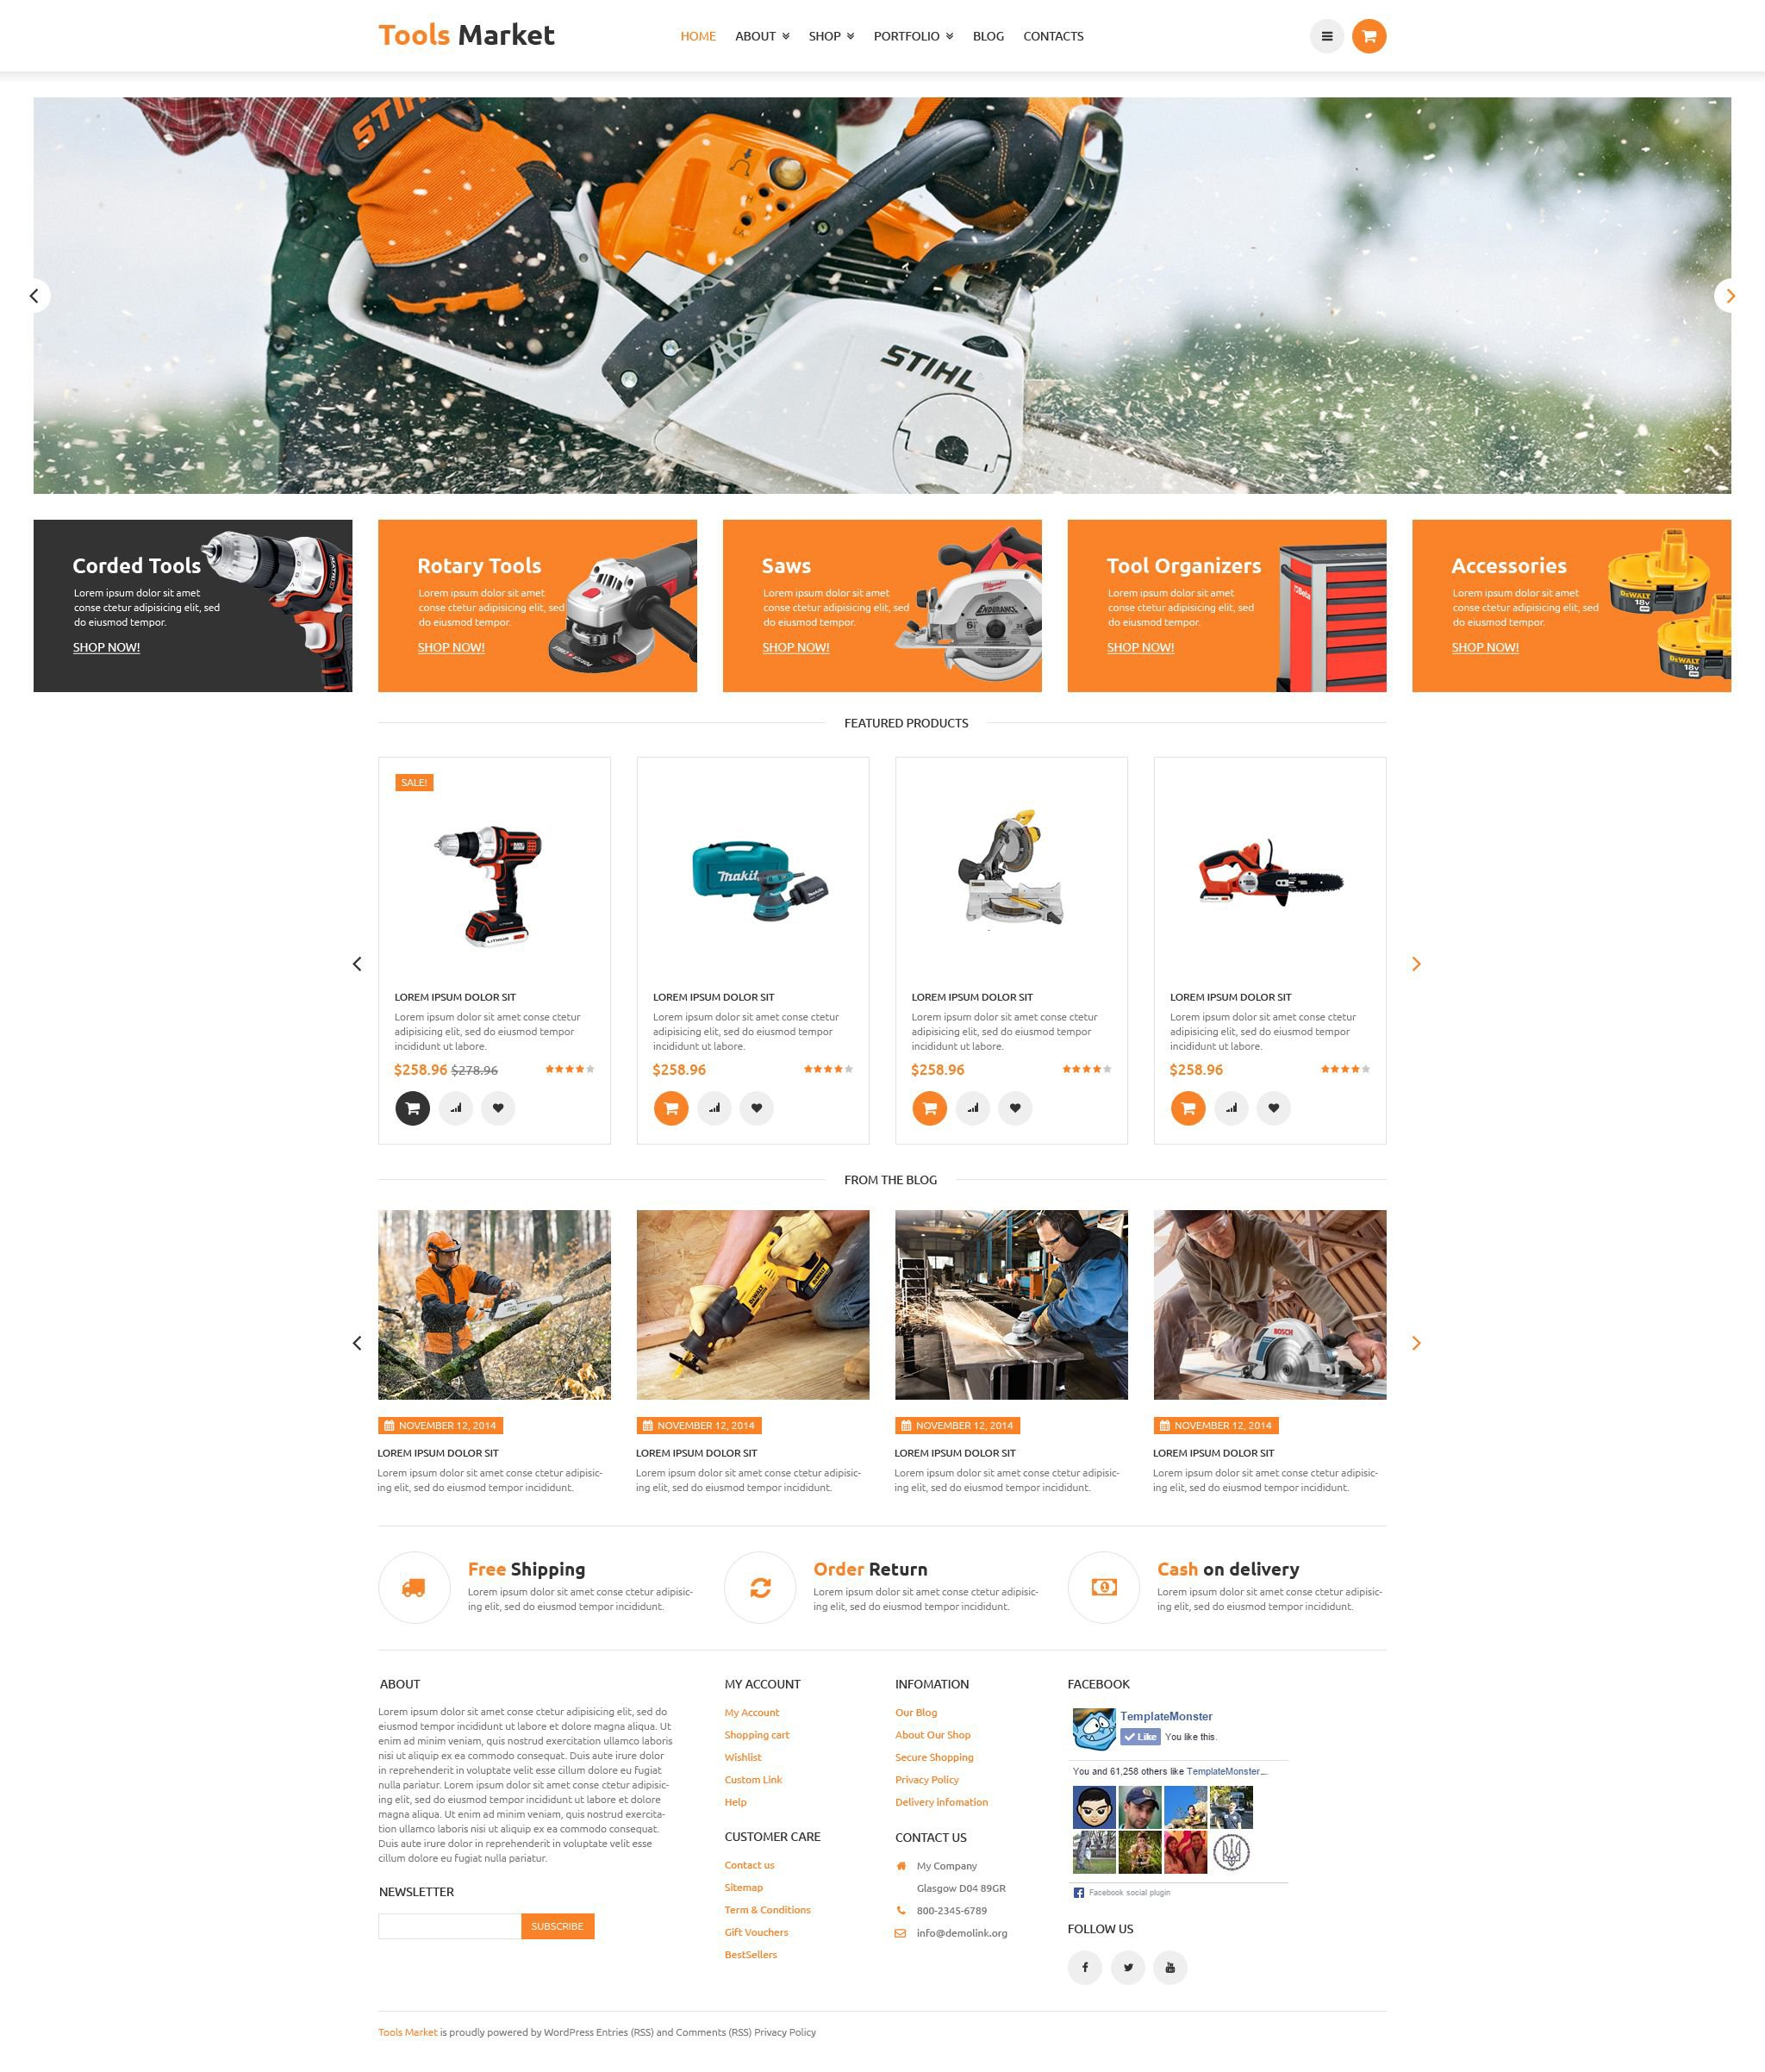 The Tools Online Store WooCommerce Design 53599, one of the best WooCommerce themes of its kind (wedding, most popular), also known as tools online store WooCommerce template, purchase WooCommerce template, industrial WooCommerce template, special accessories WooCommerce template, products WooCommerce template, power WooCommerce template, profile WooCommerce template, standard WooCommerce template, drill WooCommerce template, lawn-mower WooCommerce template, gardening WooCommerce template, motor WooCommerce template, master WooCommerce template, cordless WooCommerce template, air WooCommerce template, power WooCommerce template, tool WooCommerce template, electric pliers WooCommerce template, advice dealership dealer WooCommerce template, repair WooCommerce template, rent WooCommerce template, cutting WooCommerce template, clamps WooCommerce template, automotive WooCommerce template, remover WooCommerce template, puller and related with tools online store, purchase, industrial, special accessories, products, power, profile, standard, drill, lawn-mower, gardening, motor, master, cordless, air, power, tool, electric pliers, advice dealership dealer, repair, rent, cutting, clamps, automotive, remover, puller, etc.